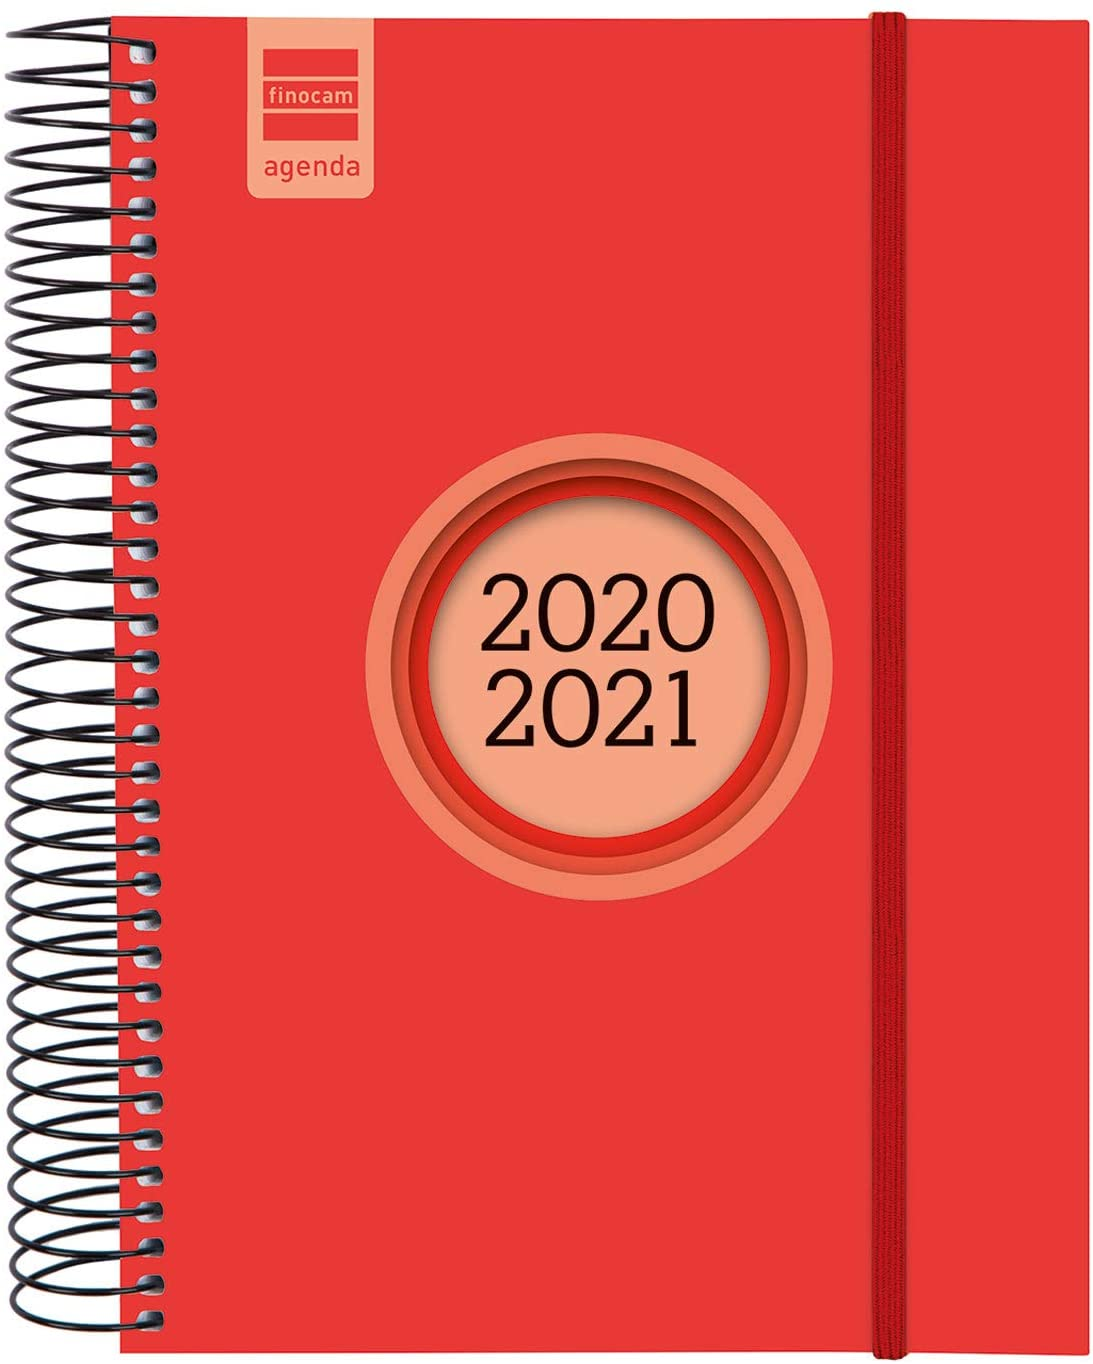 Finocam - Agenda Course 2020-2021 E10-155x212 1 Day Page Spy Label Red Spanish